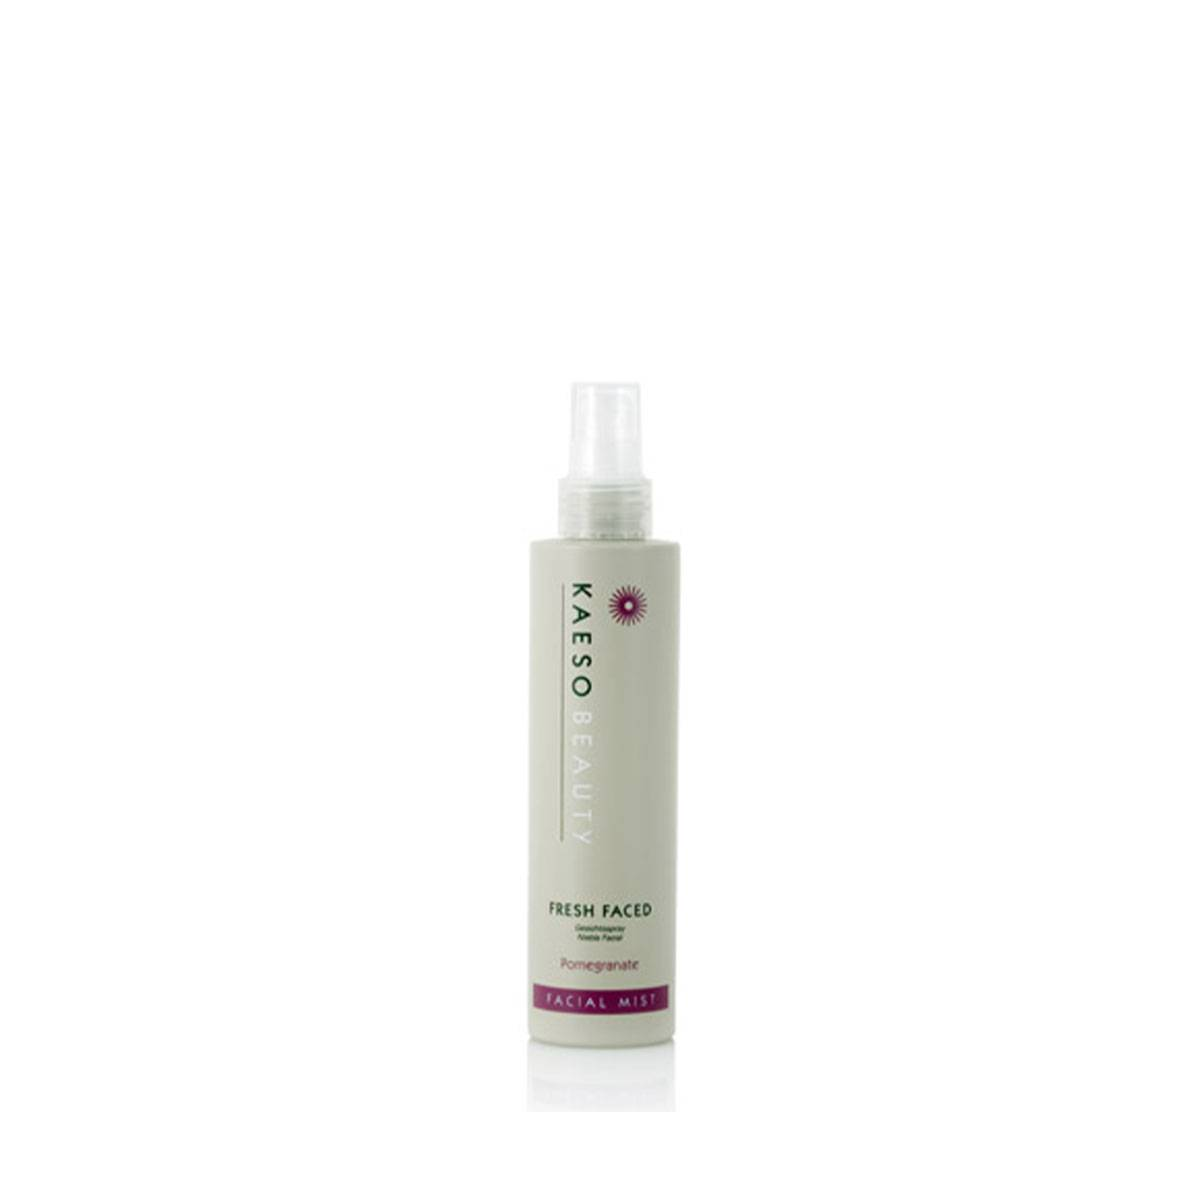 Kaeso Fresh Faced Facial Mist 195ml*cat